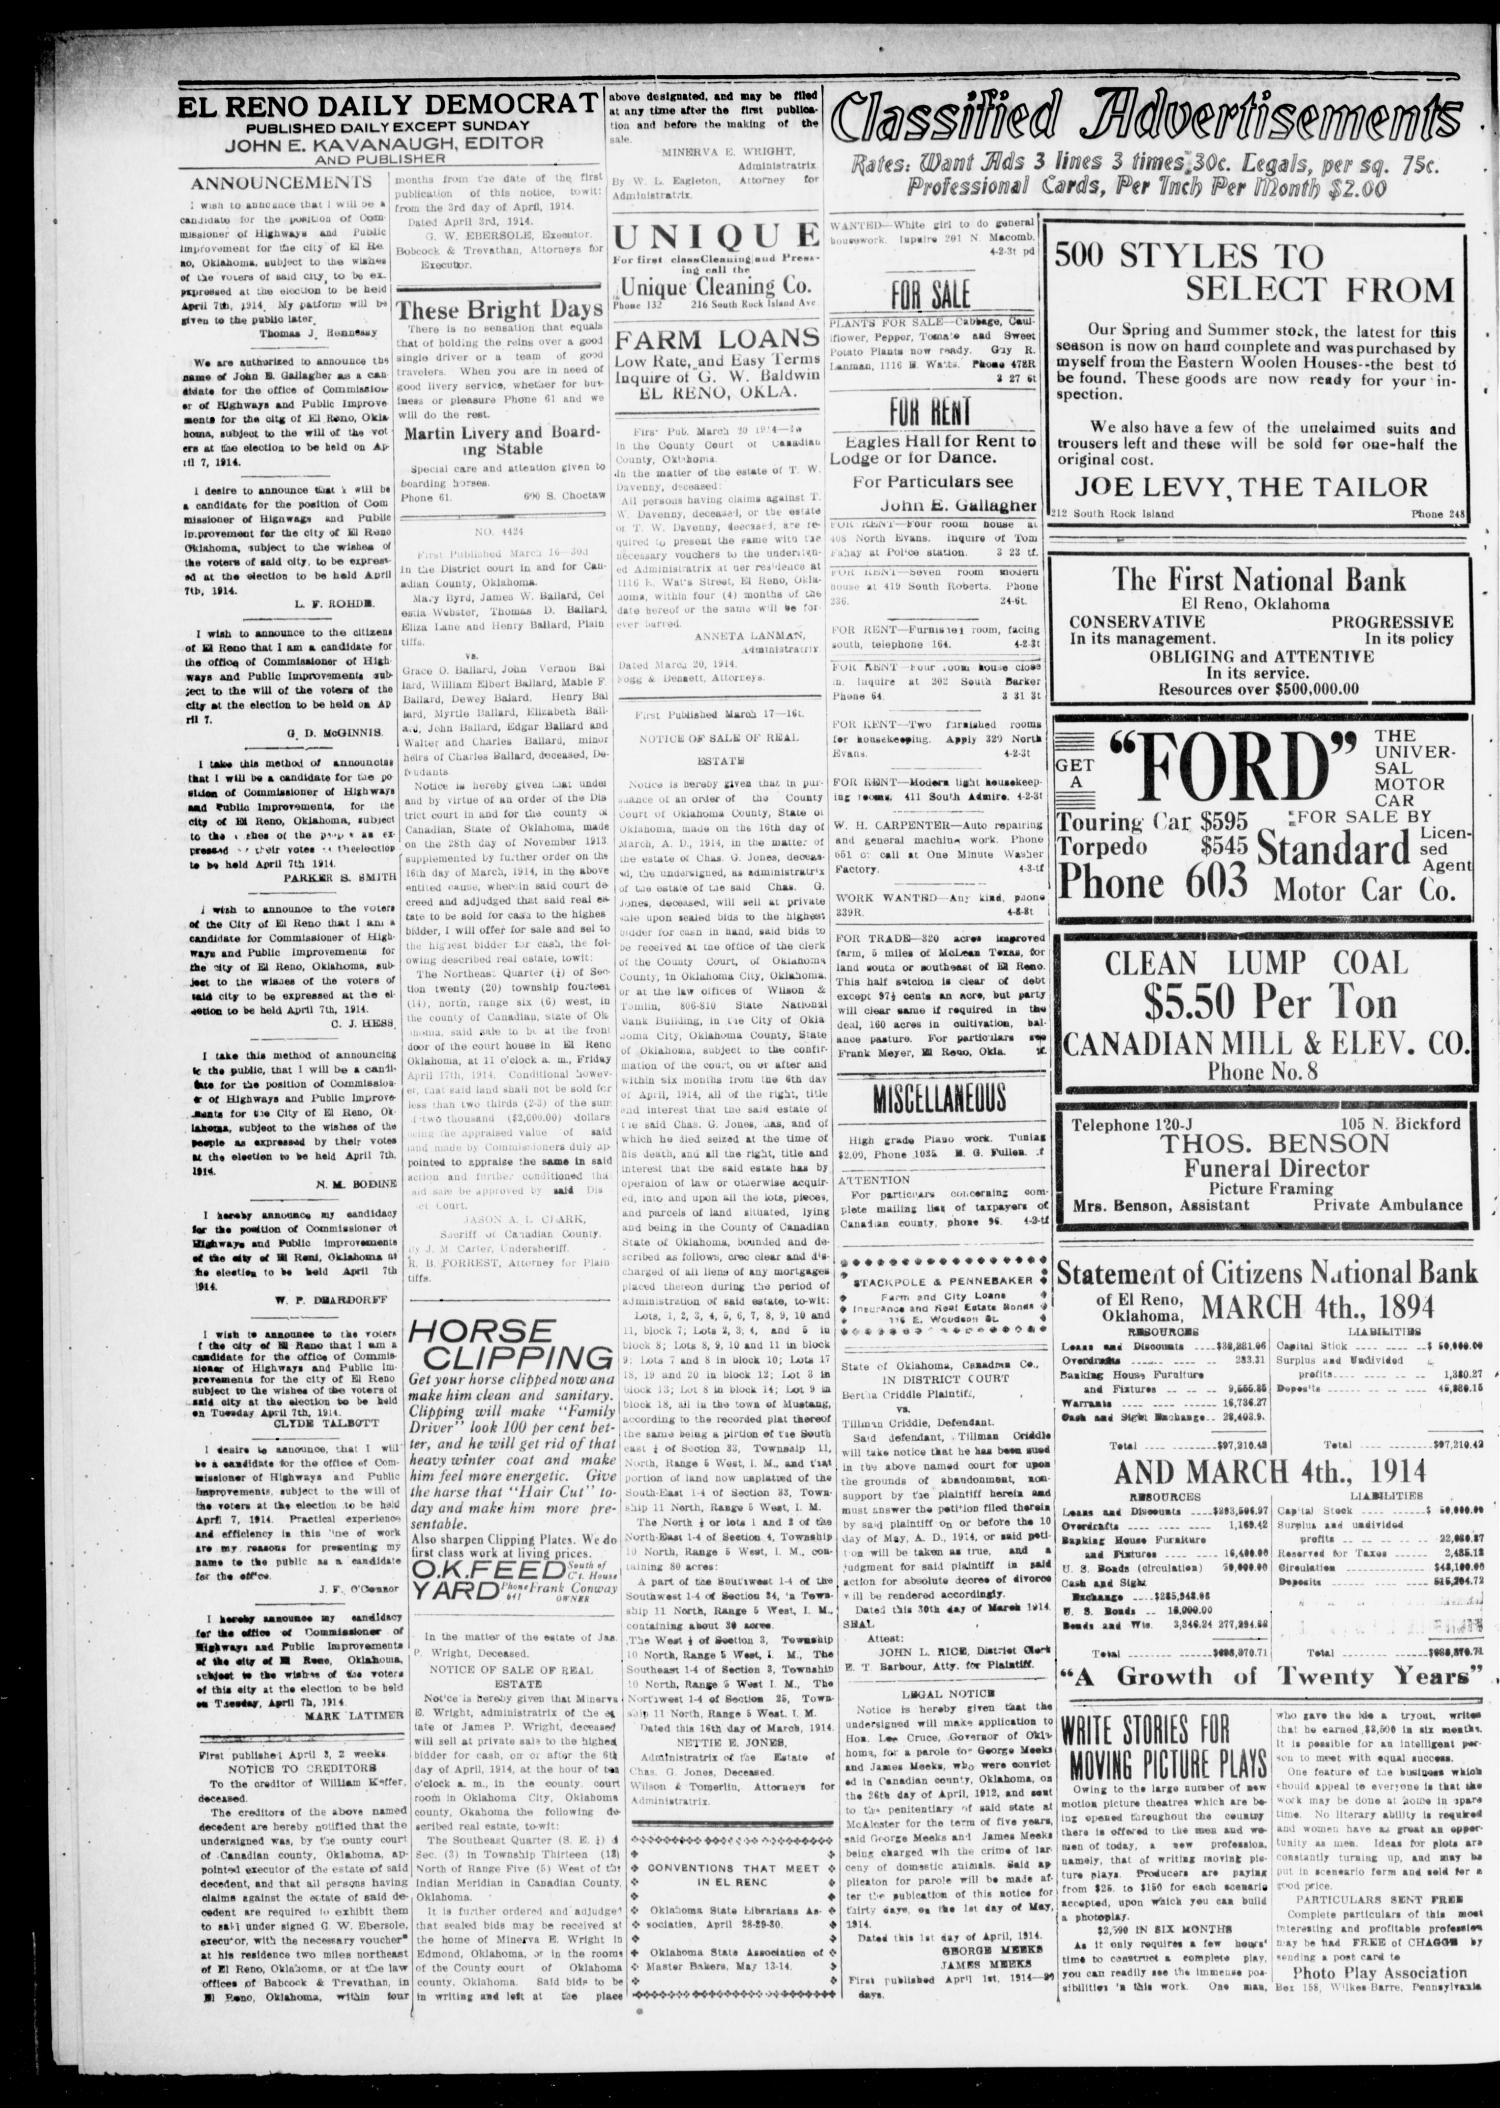 El Reno Daily Democrat (El Reno, Okla.), Vol. 24, No. 30, Ed. 1 Saturday, April 4, 1914                                                                                                      [Sequence #]: 2 of 4